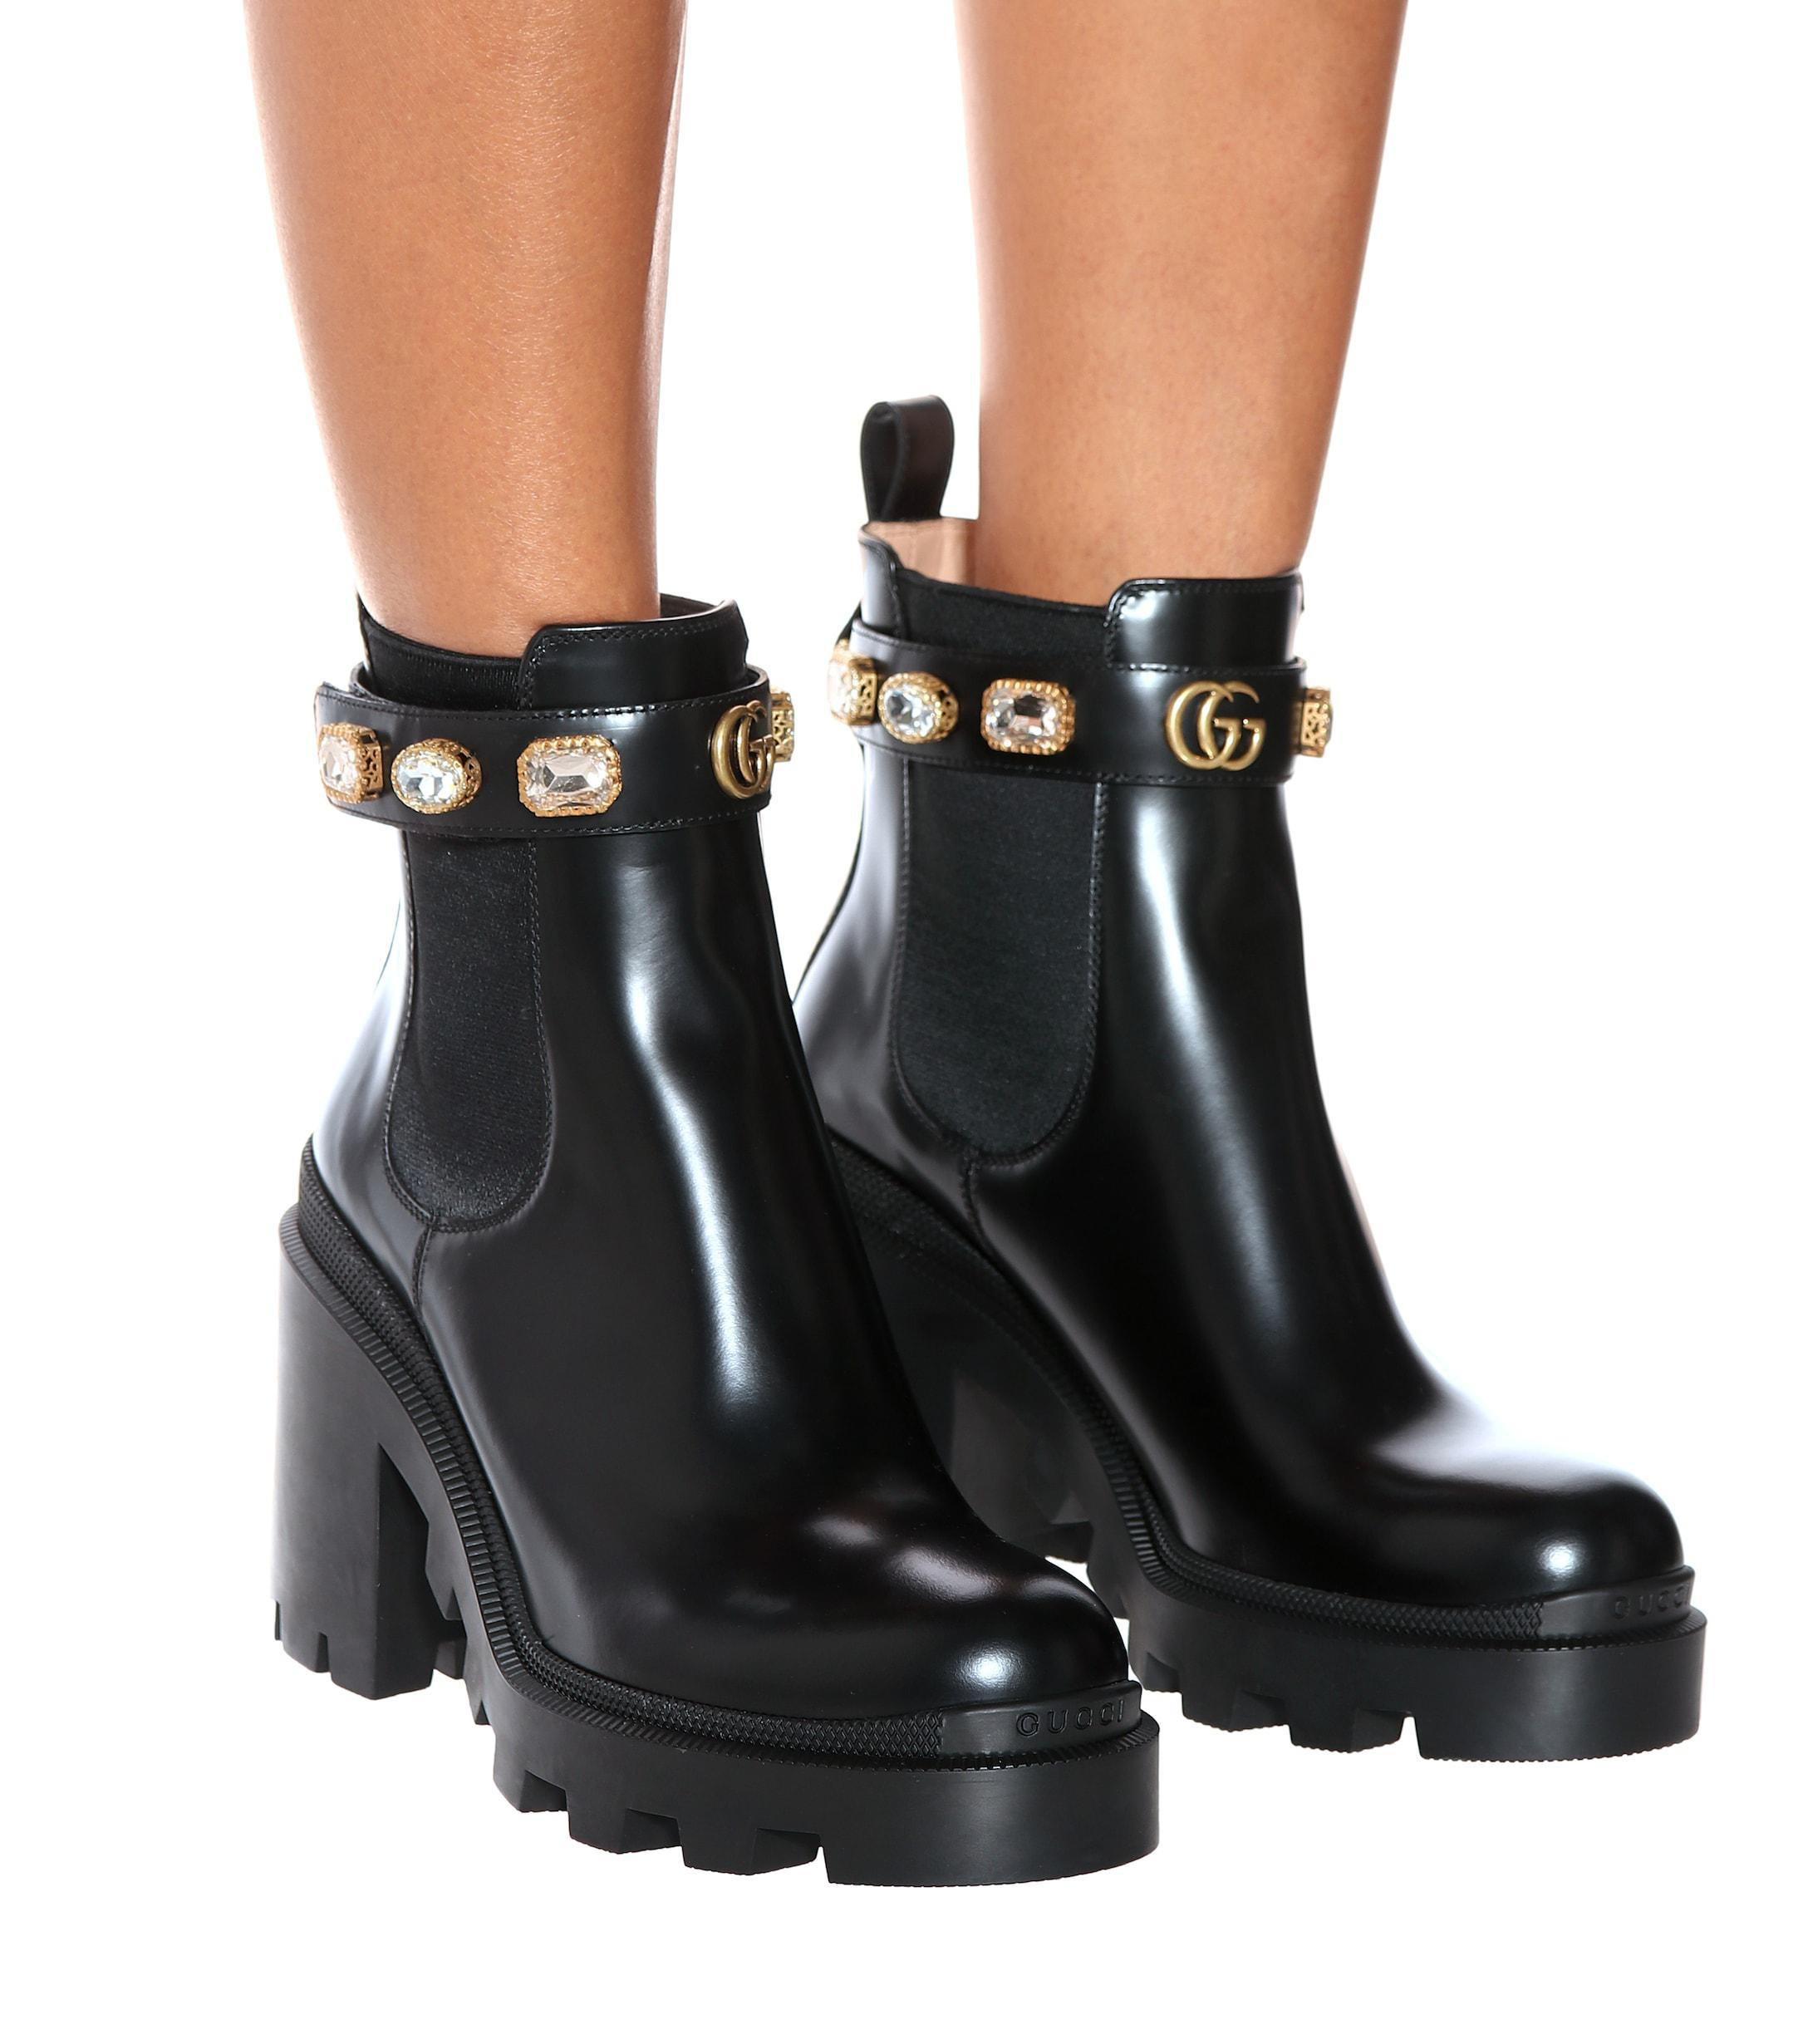 95dc53eaed8 Gucci - Black Embellished Leather Ankle Boots - Lyst. View fullscreen